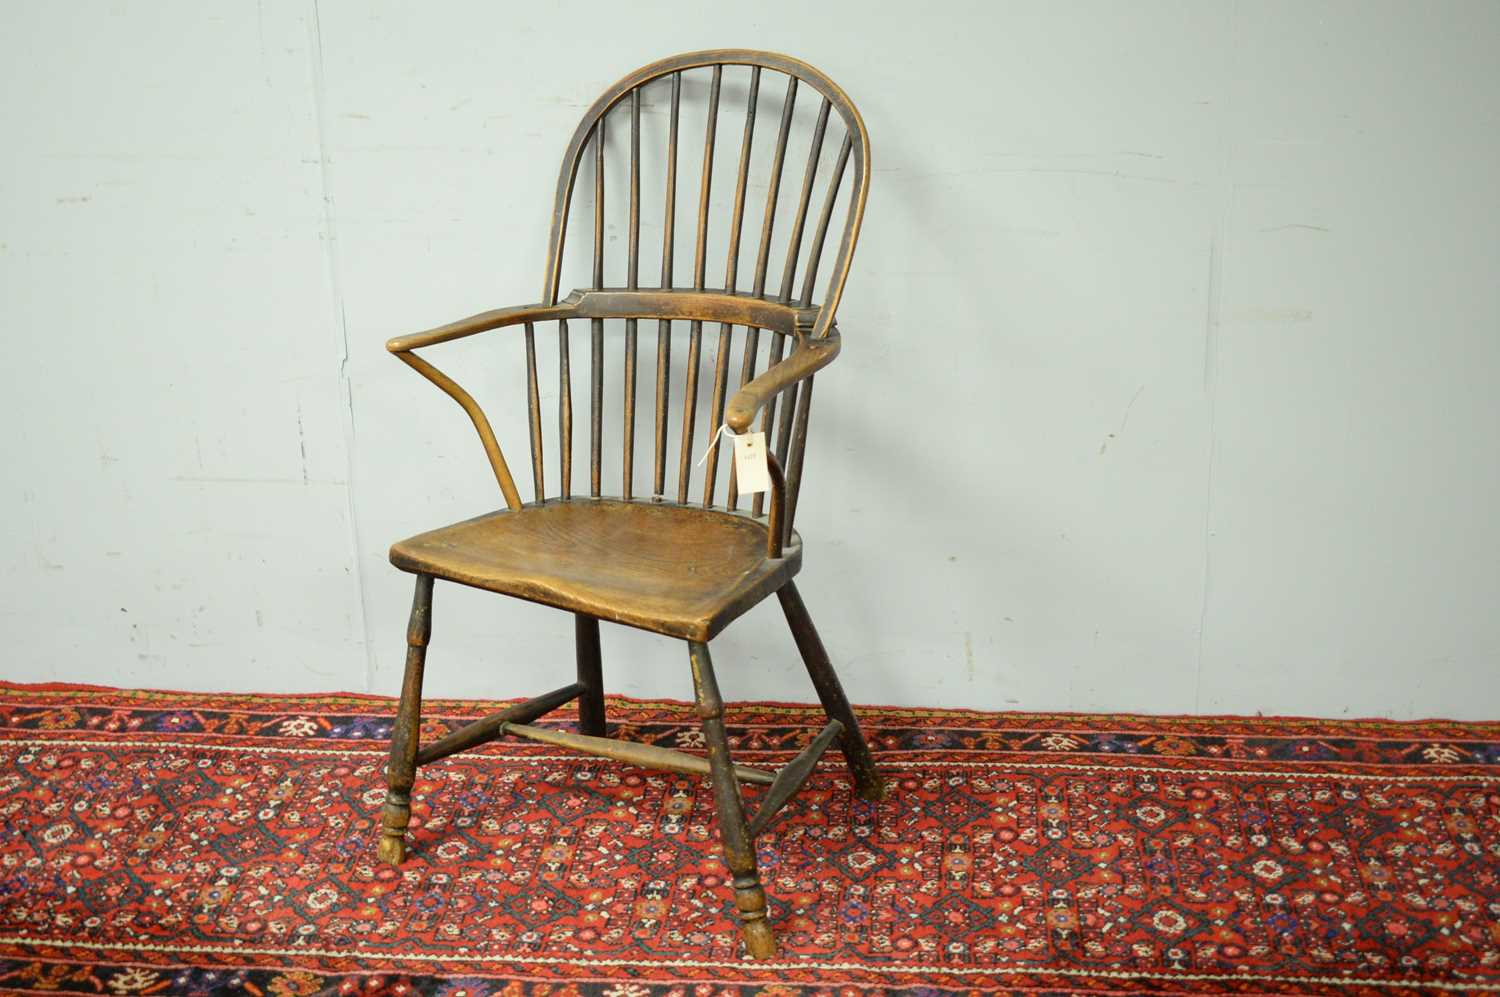 19th C Windsor chair. - Image 2 of 5